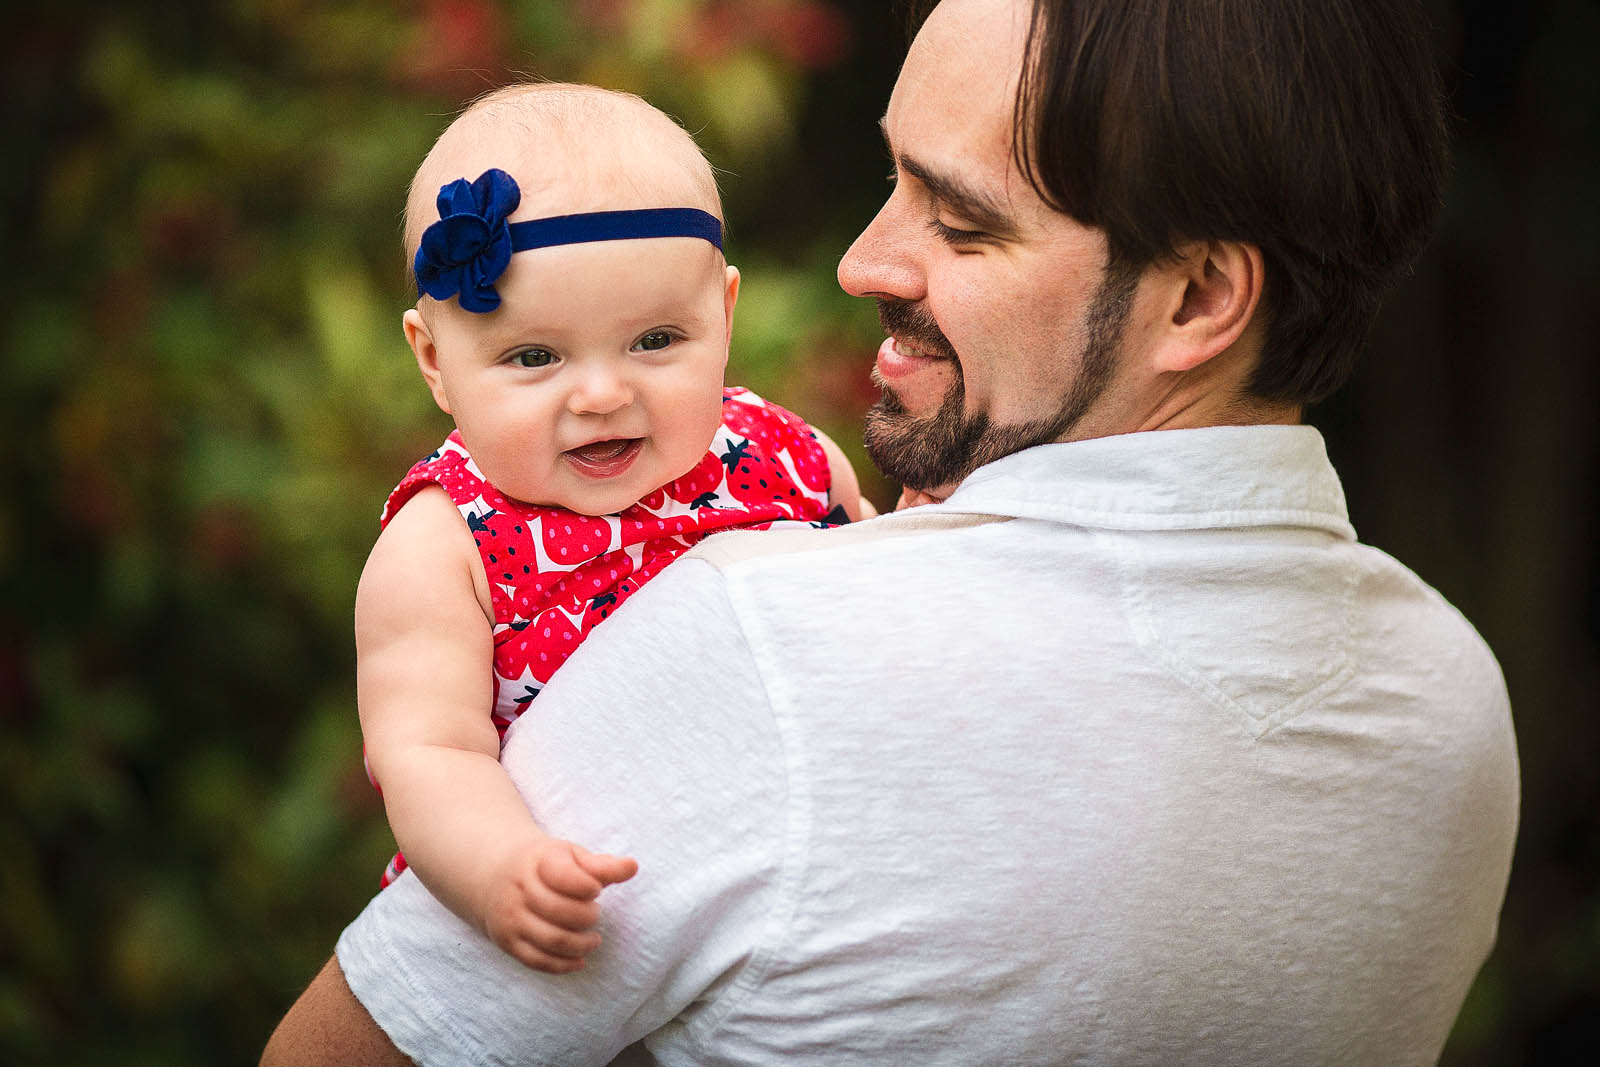 Family Photo Session In Raleigh, NC   JC Raulston Arboretum